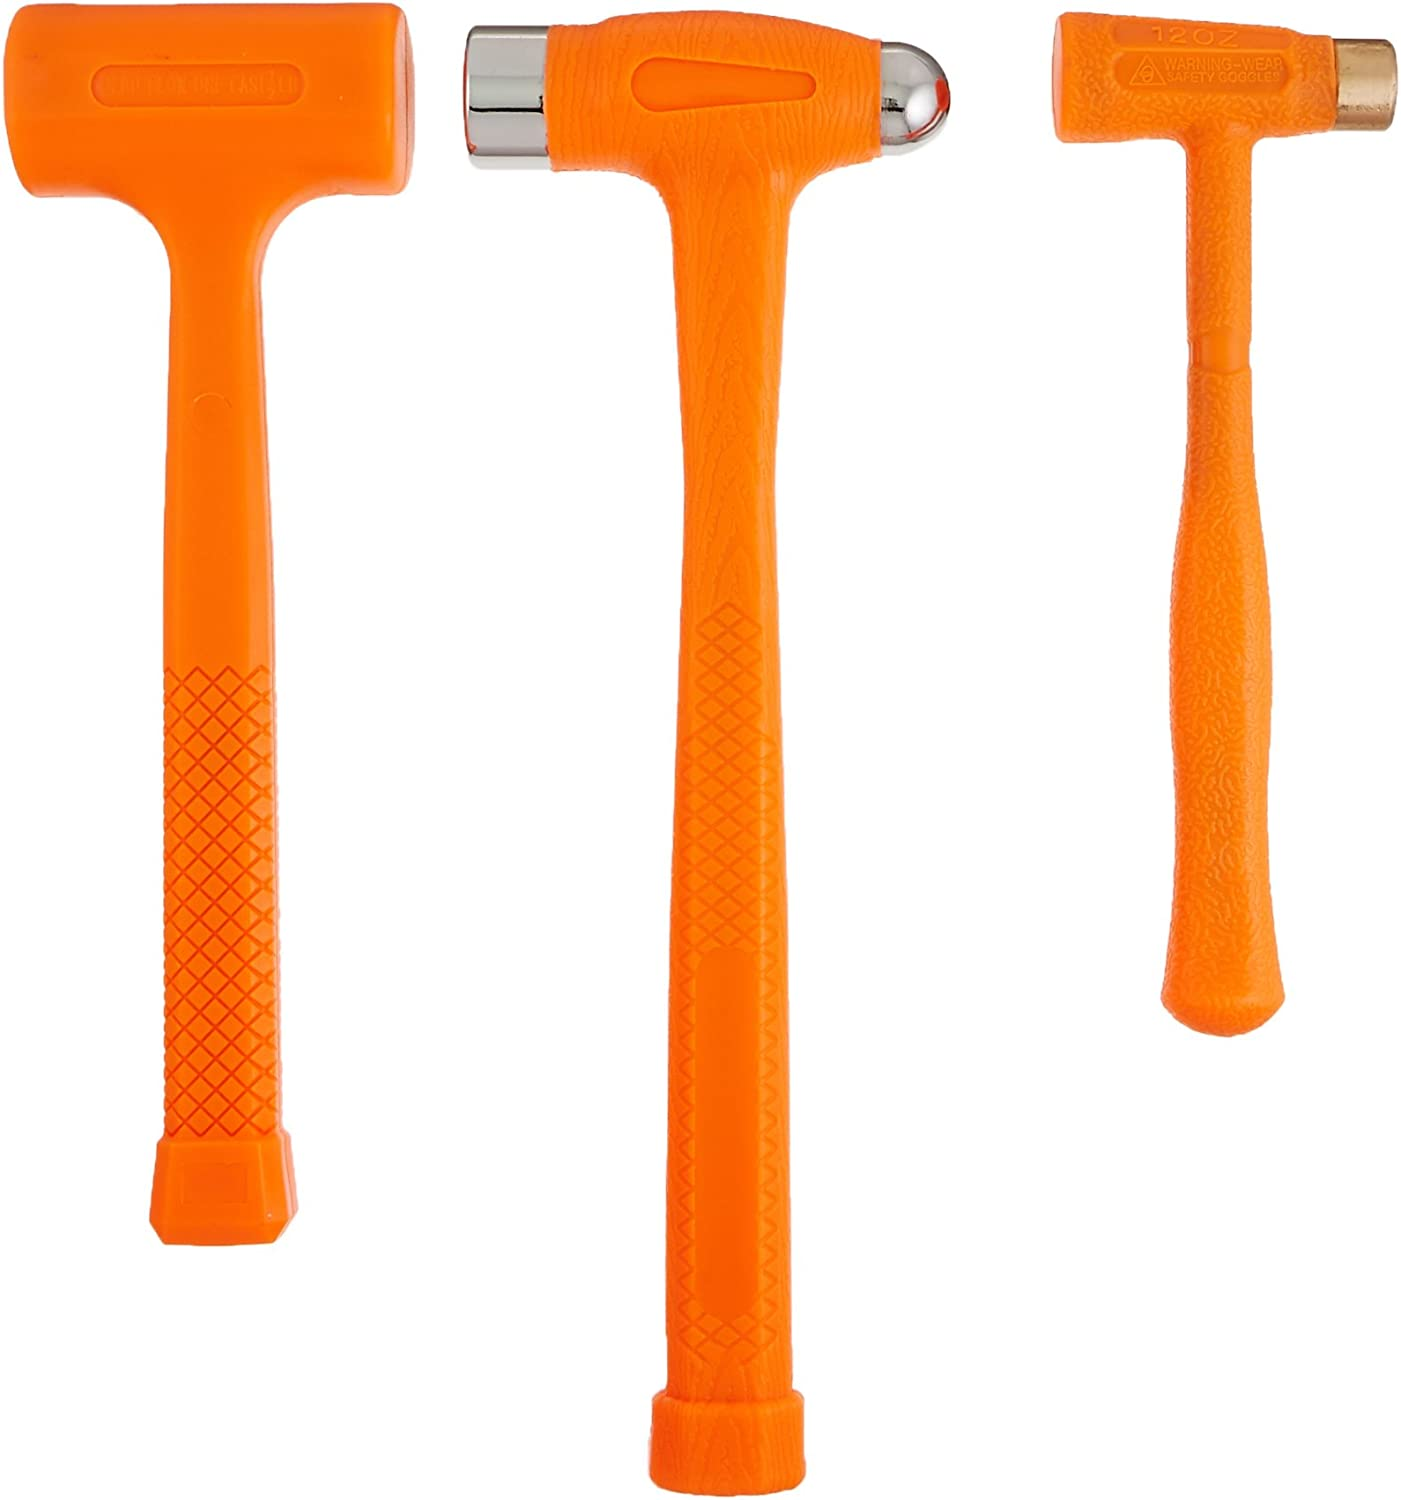 PROFESSIONAL DEAD BLOW HAMMER 4 PCS SET INCLUDED 8 OZ,16 OZ,24 OZ /& 32 OZ